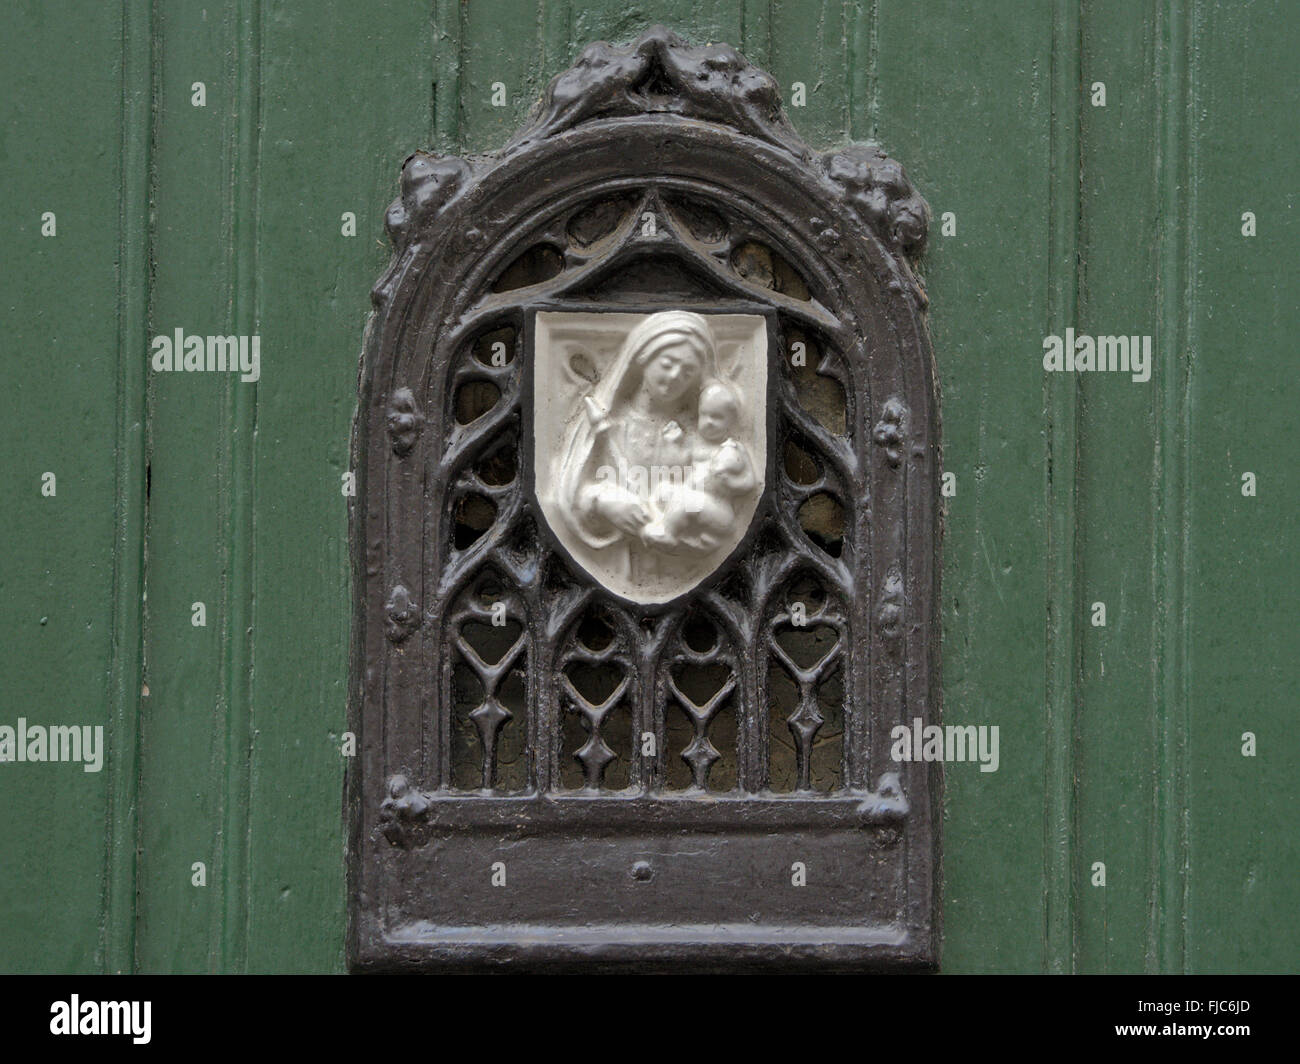 Decorated door viewer with bas-relief of virgin mary with baby jesus, found at ter hoyen beguinage in Ghent - Stock Image